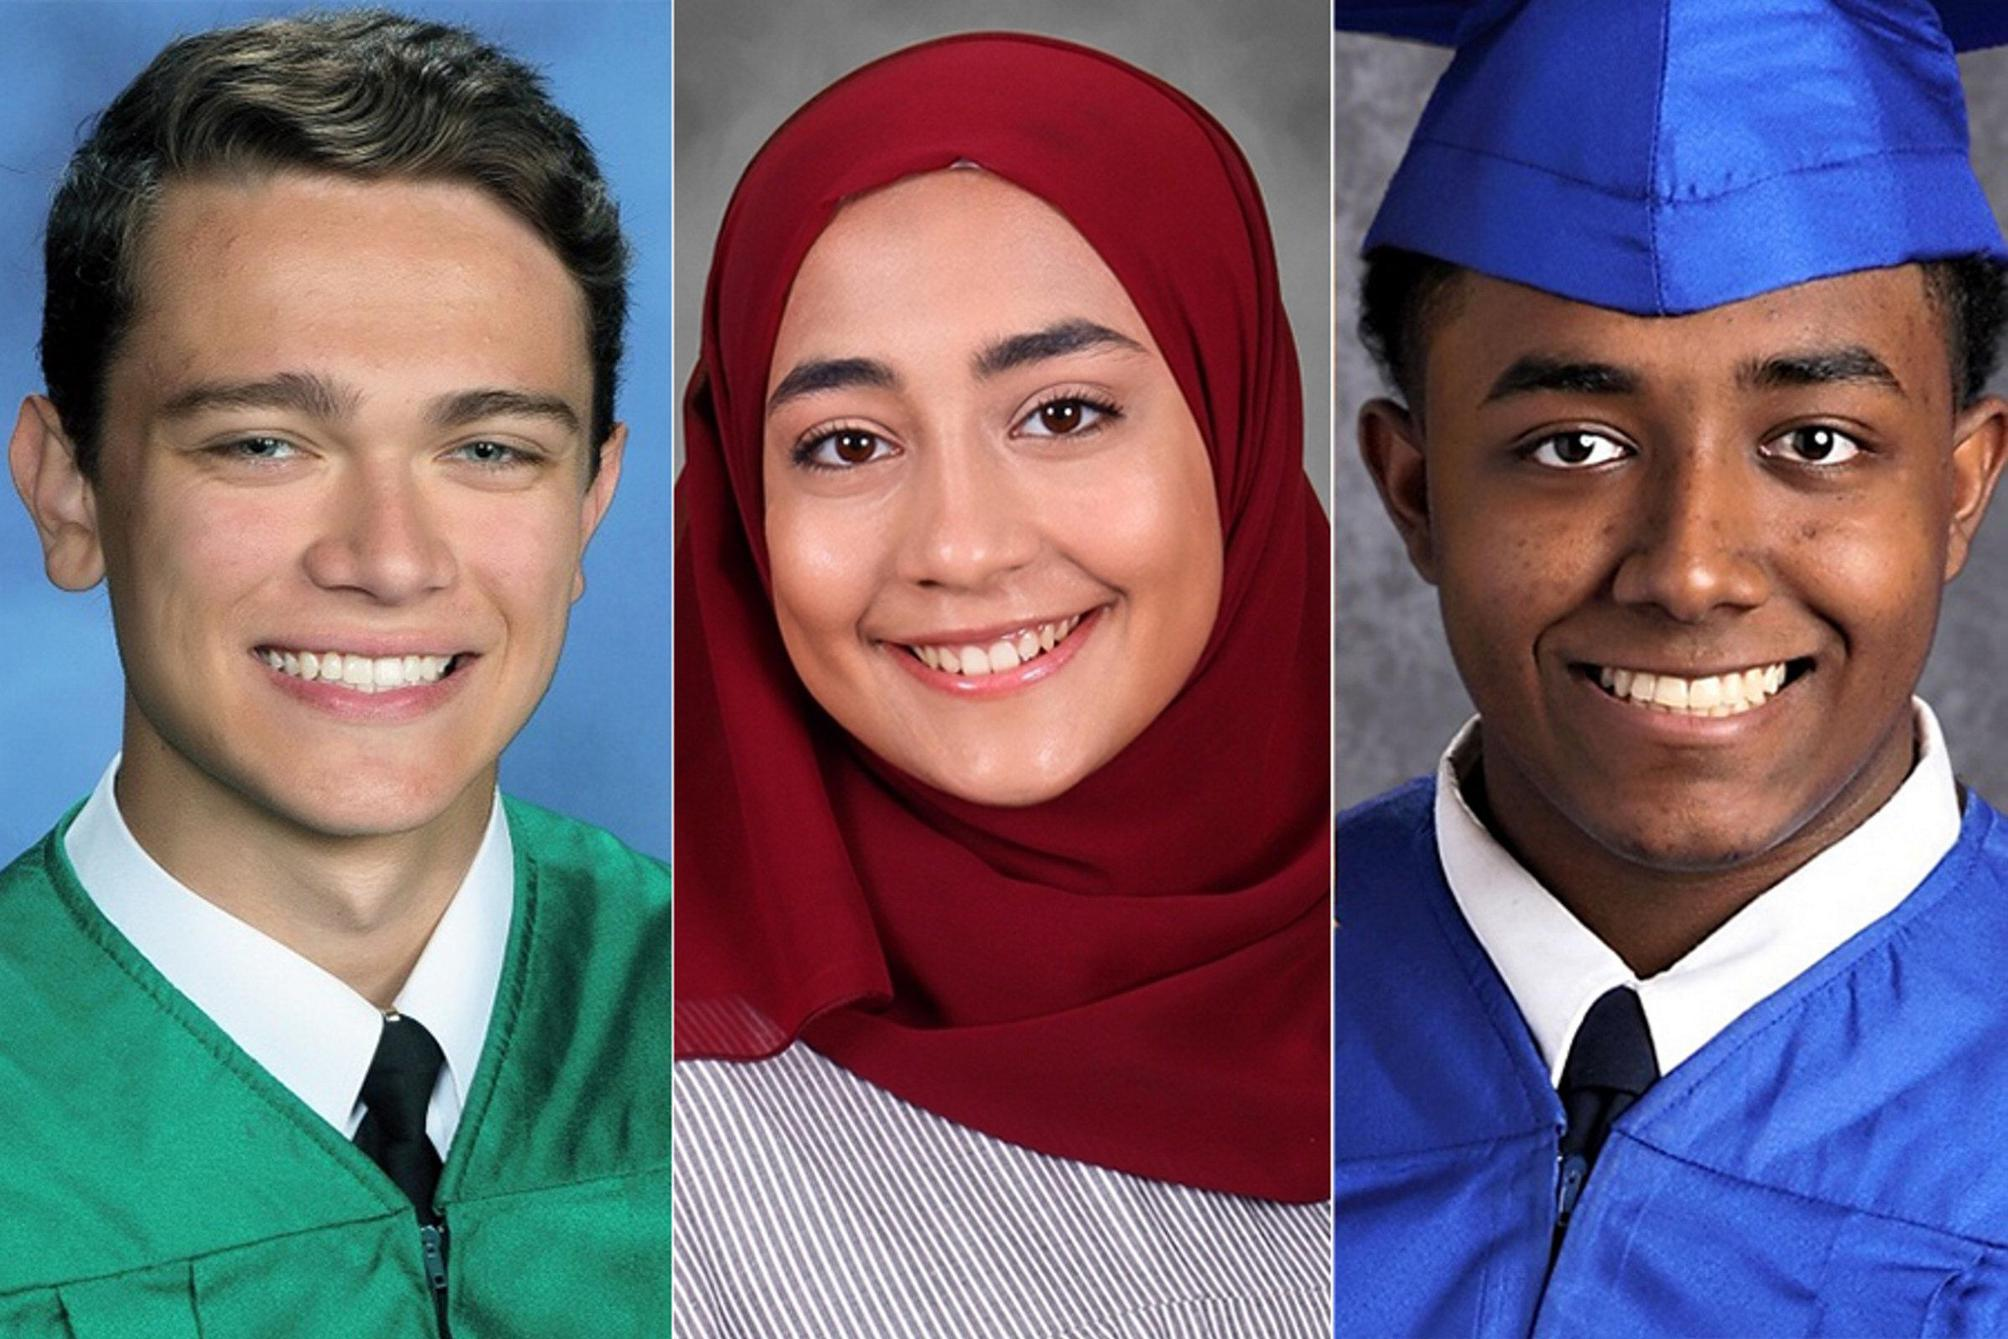 Long Island valedictorians 2019 - ND Feature Grid